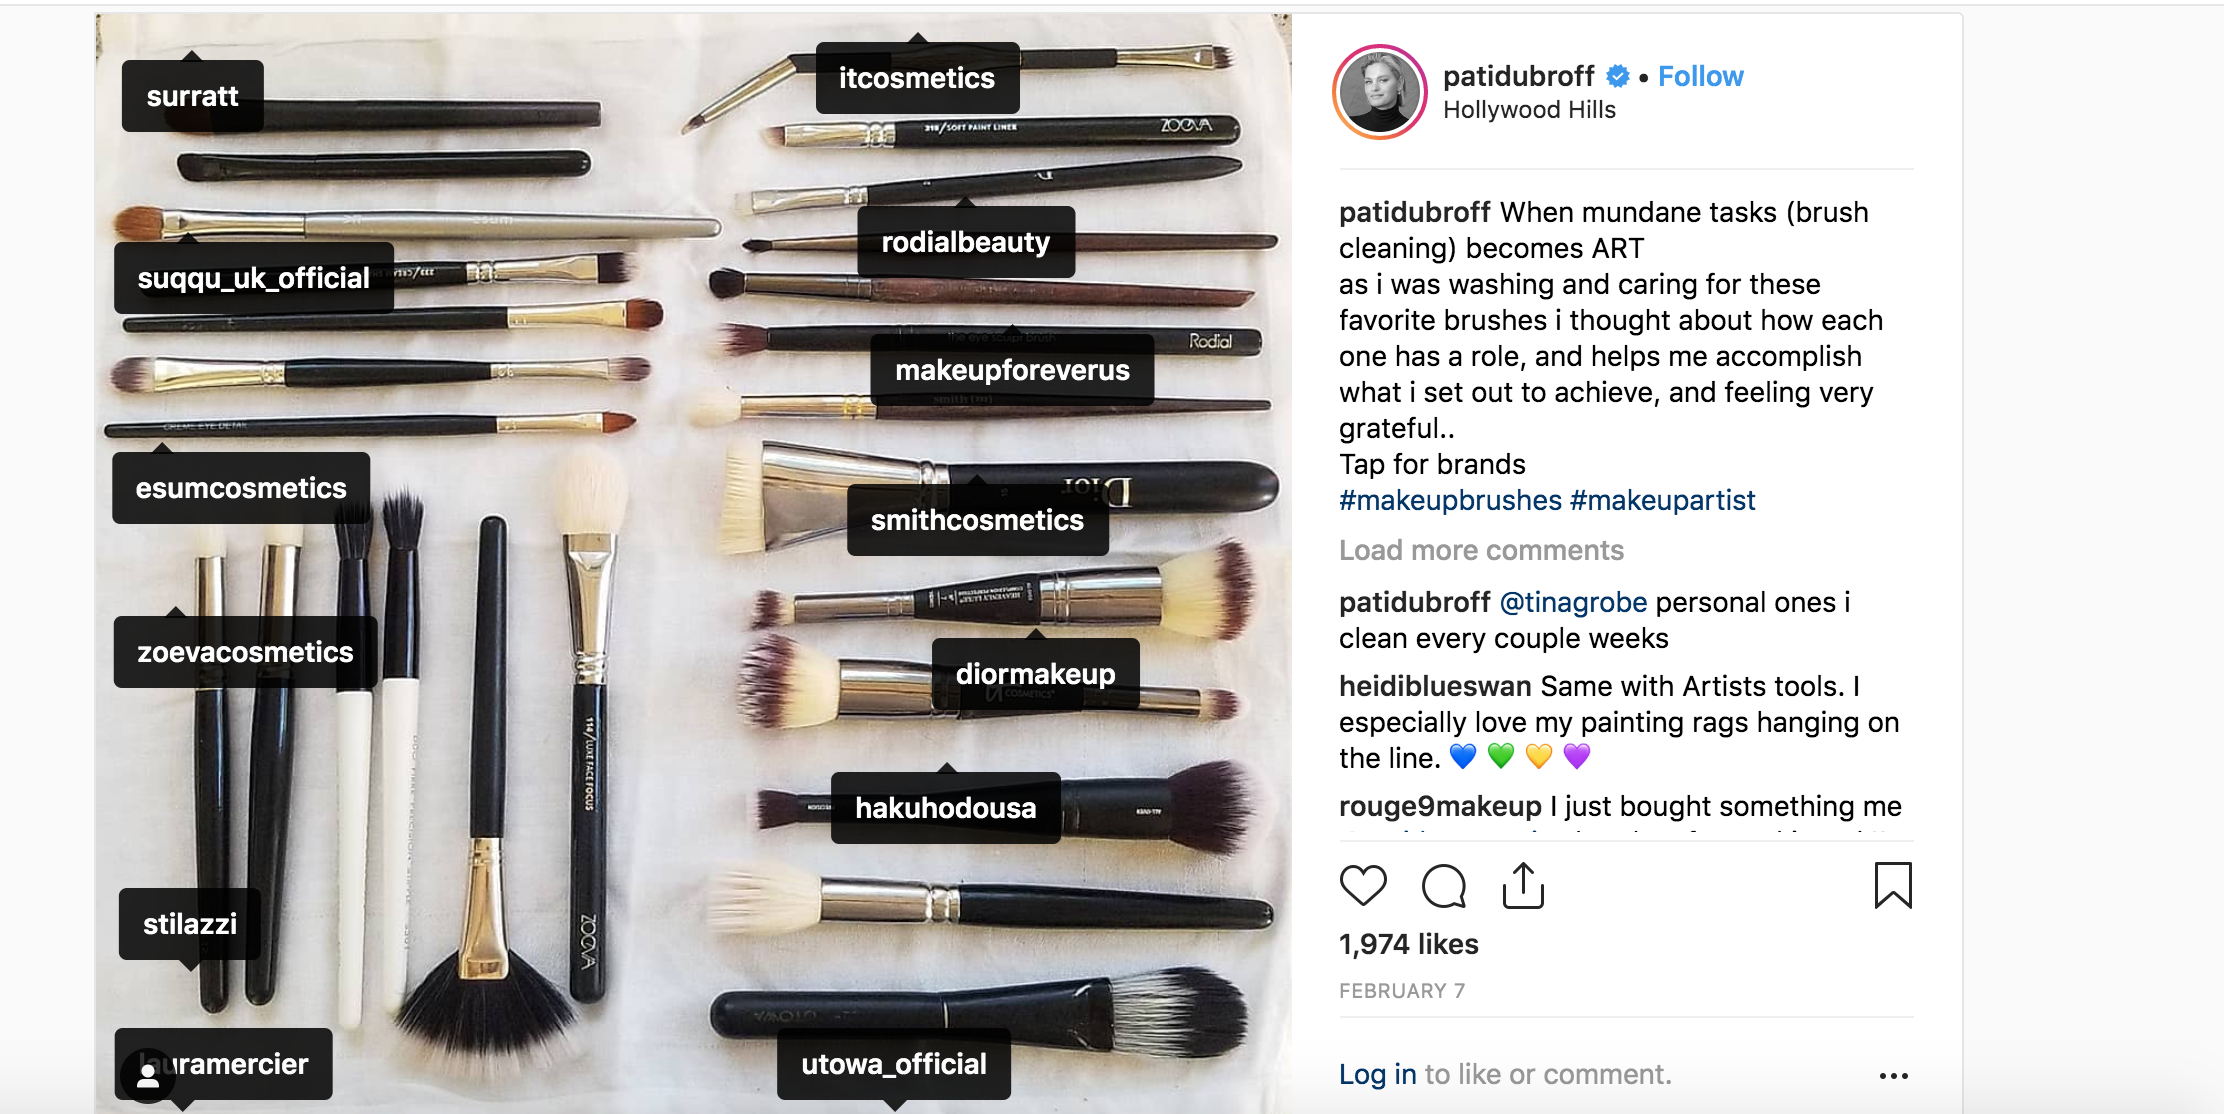 Pati often Instagrams her makeup brushes after a good cleaning